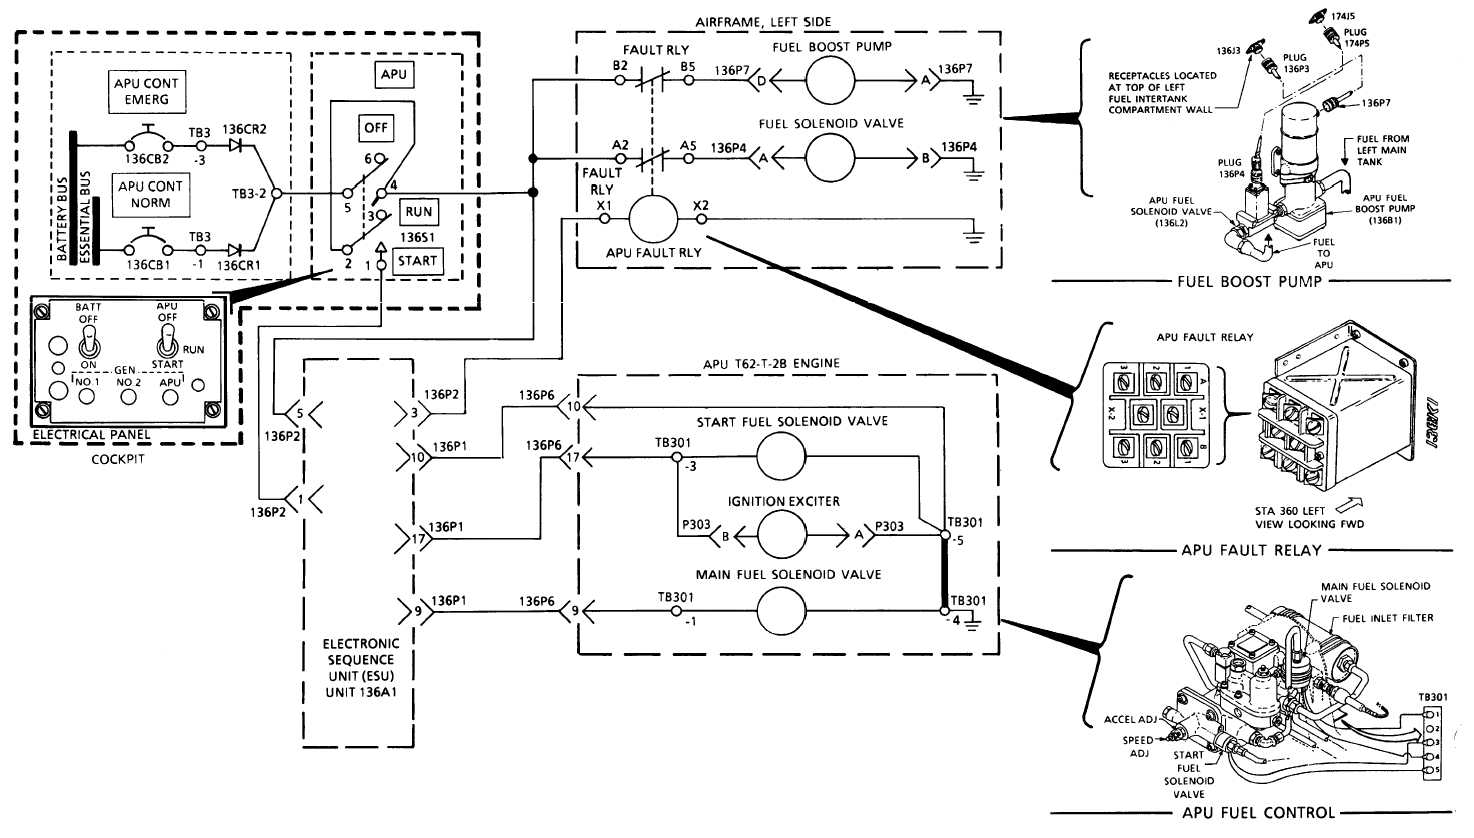 Apu Fuel System Electrical Schematic